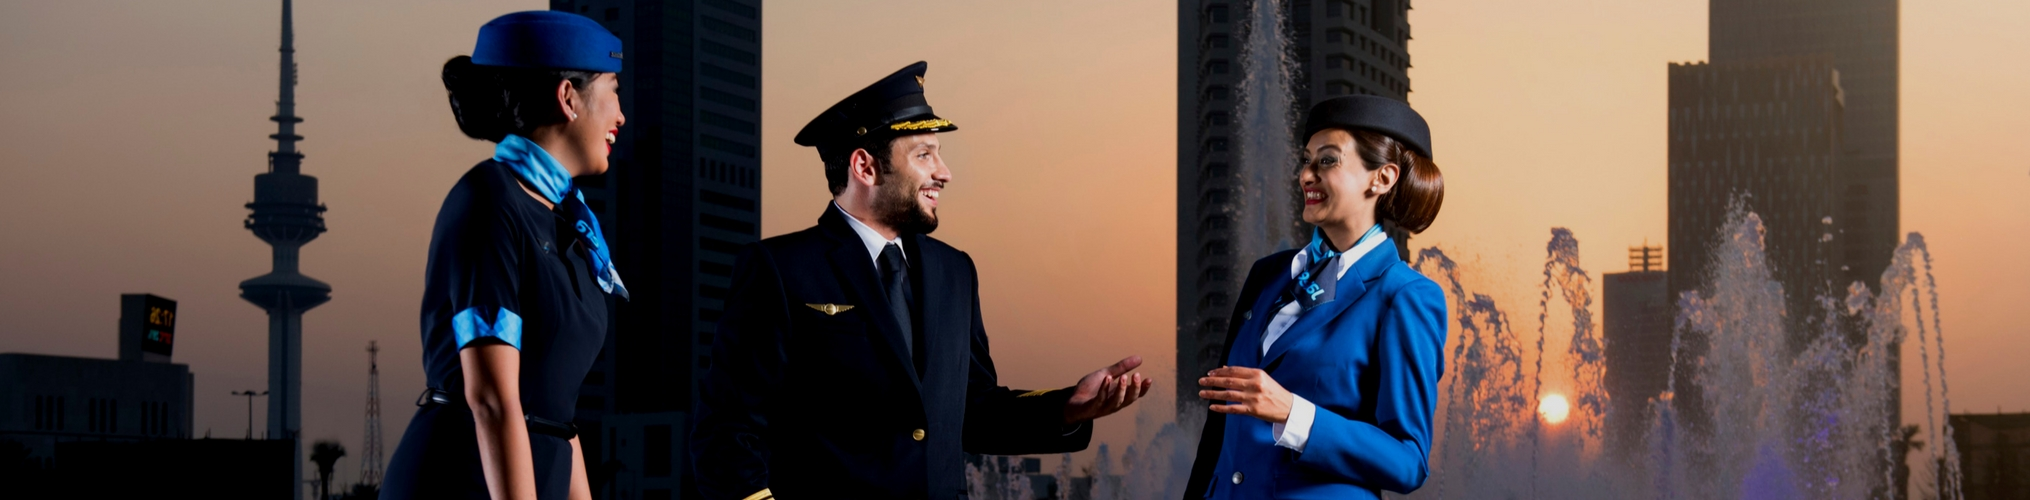 Supplier of full service cabin crew uniforms